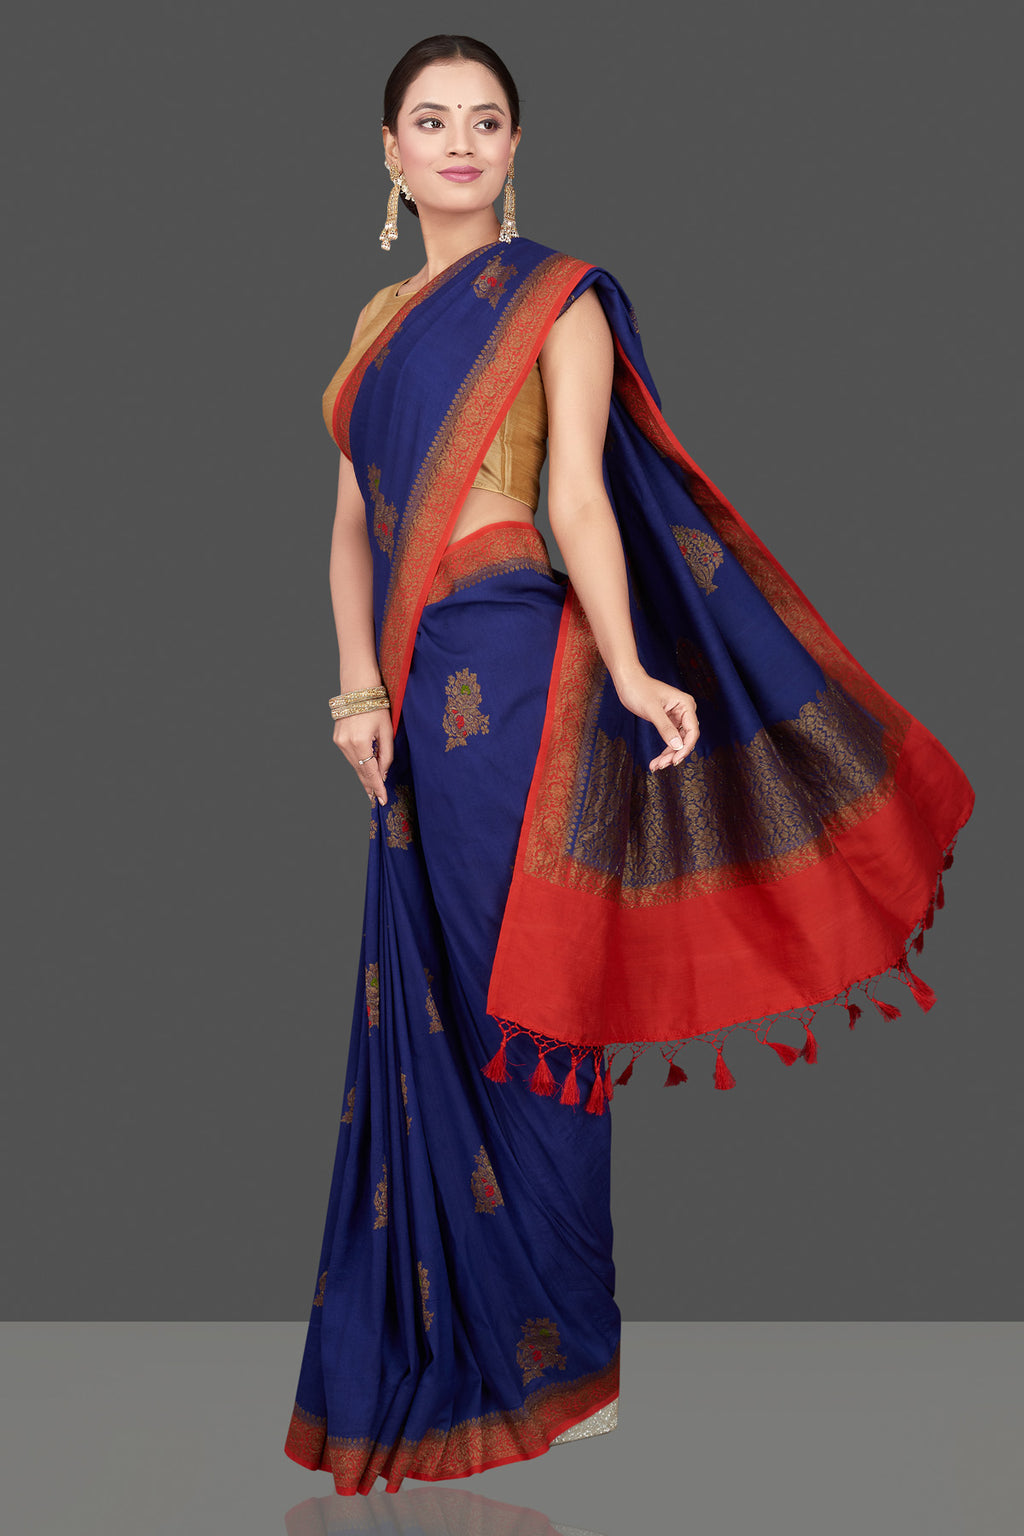 Buy beautiful dark blue Muga Banarasi saree online in USA with red antique zari border. Get ready for festive occasions and weddings in tasteful designer sarees, Banarasi sarees, handwoven sarees from Pure Elegance Indian clothing store in USA.-full view